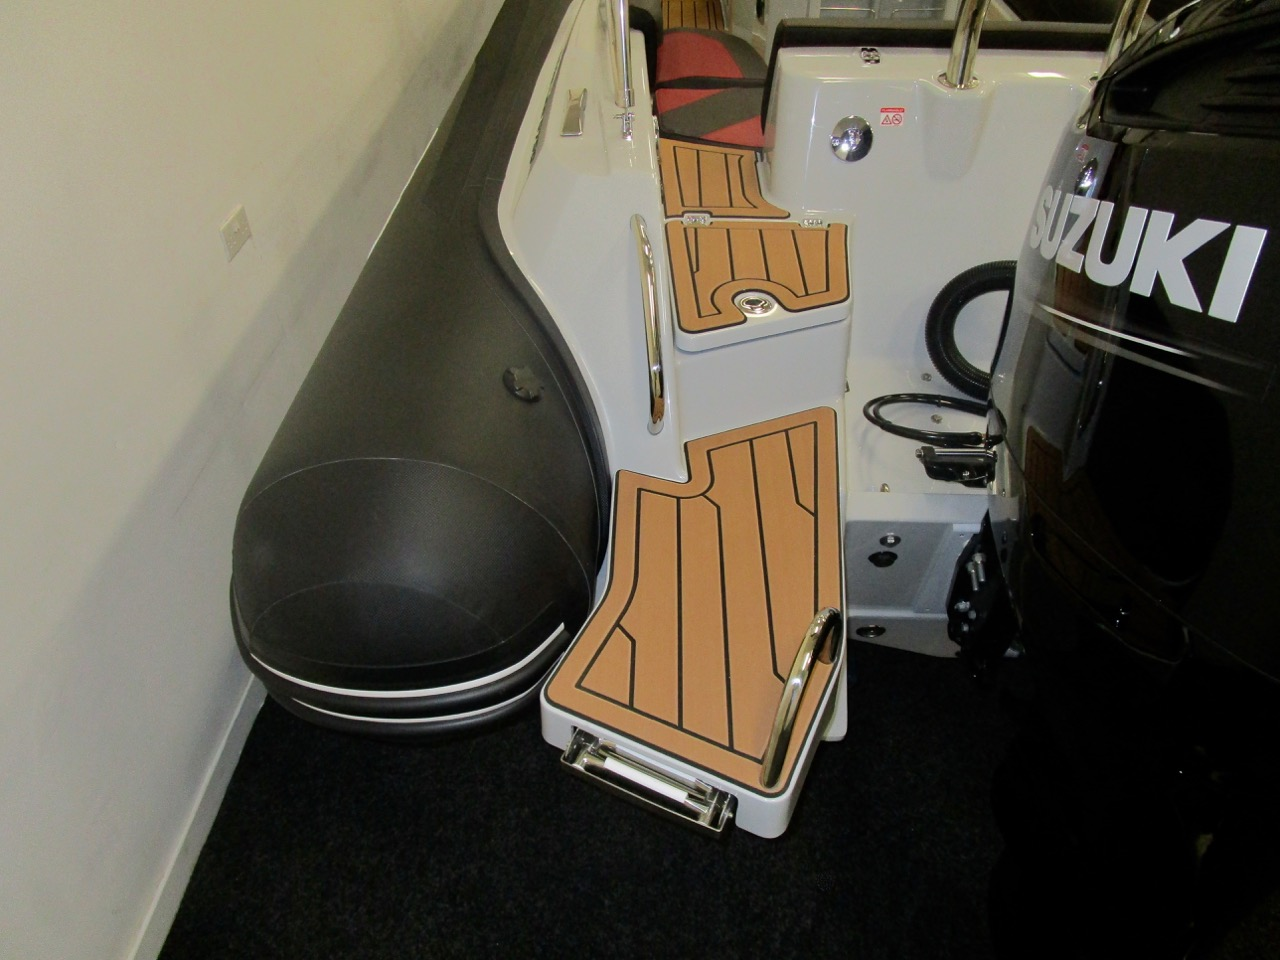 GRAND G750 RIB stepped access to cockpit from bathing ladder